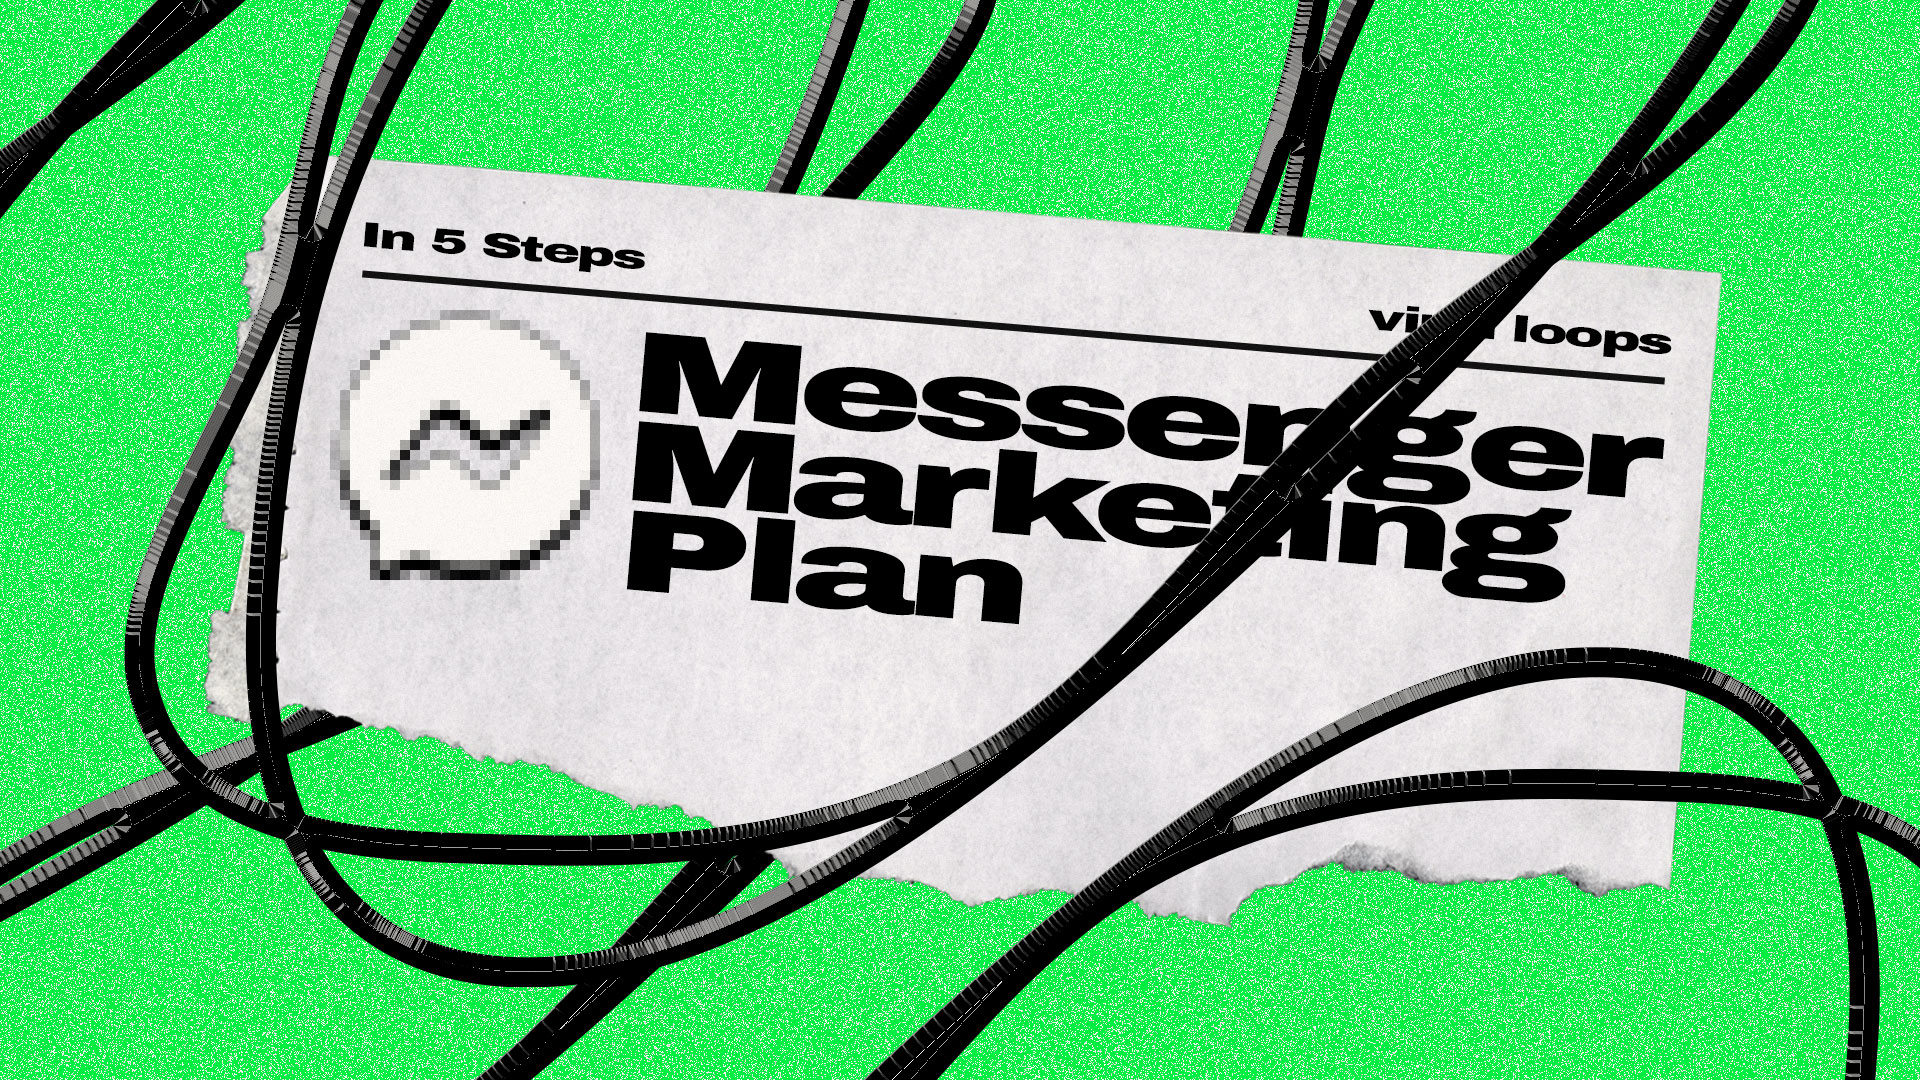 A 5 step Messenger Marketing plan.